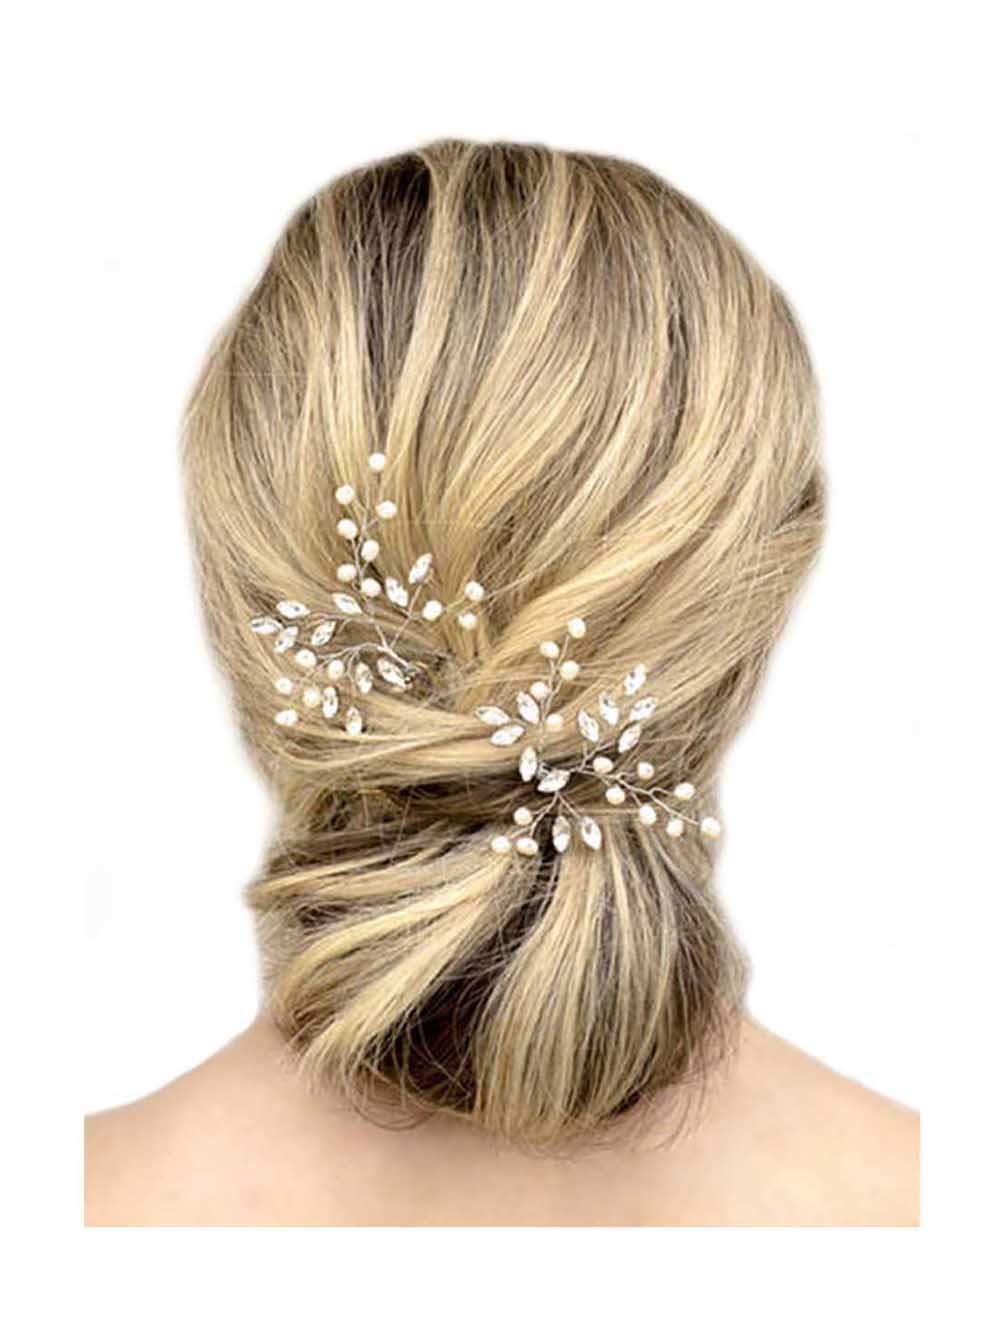 Unicra Wedding Silver Hair Pins Wedding Bridal Pearl Hair Accessories for Brides and Bridesmaids Pack of 2 (Rose Gold) by Unicra